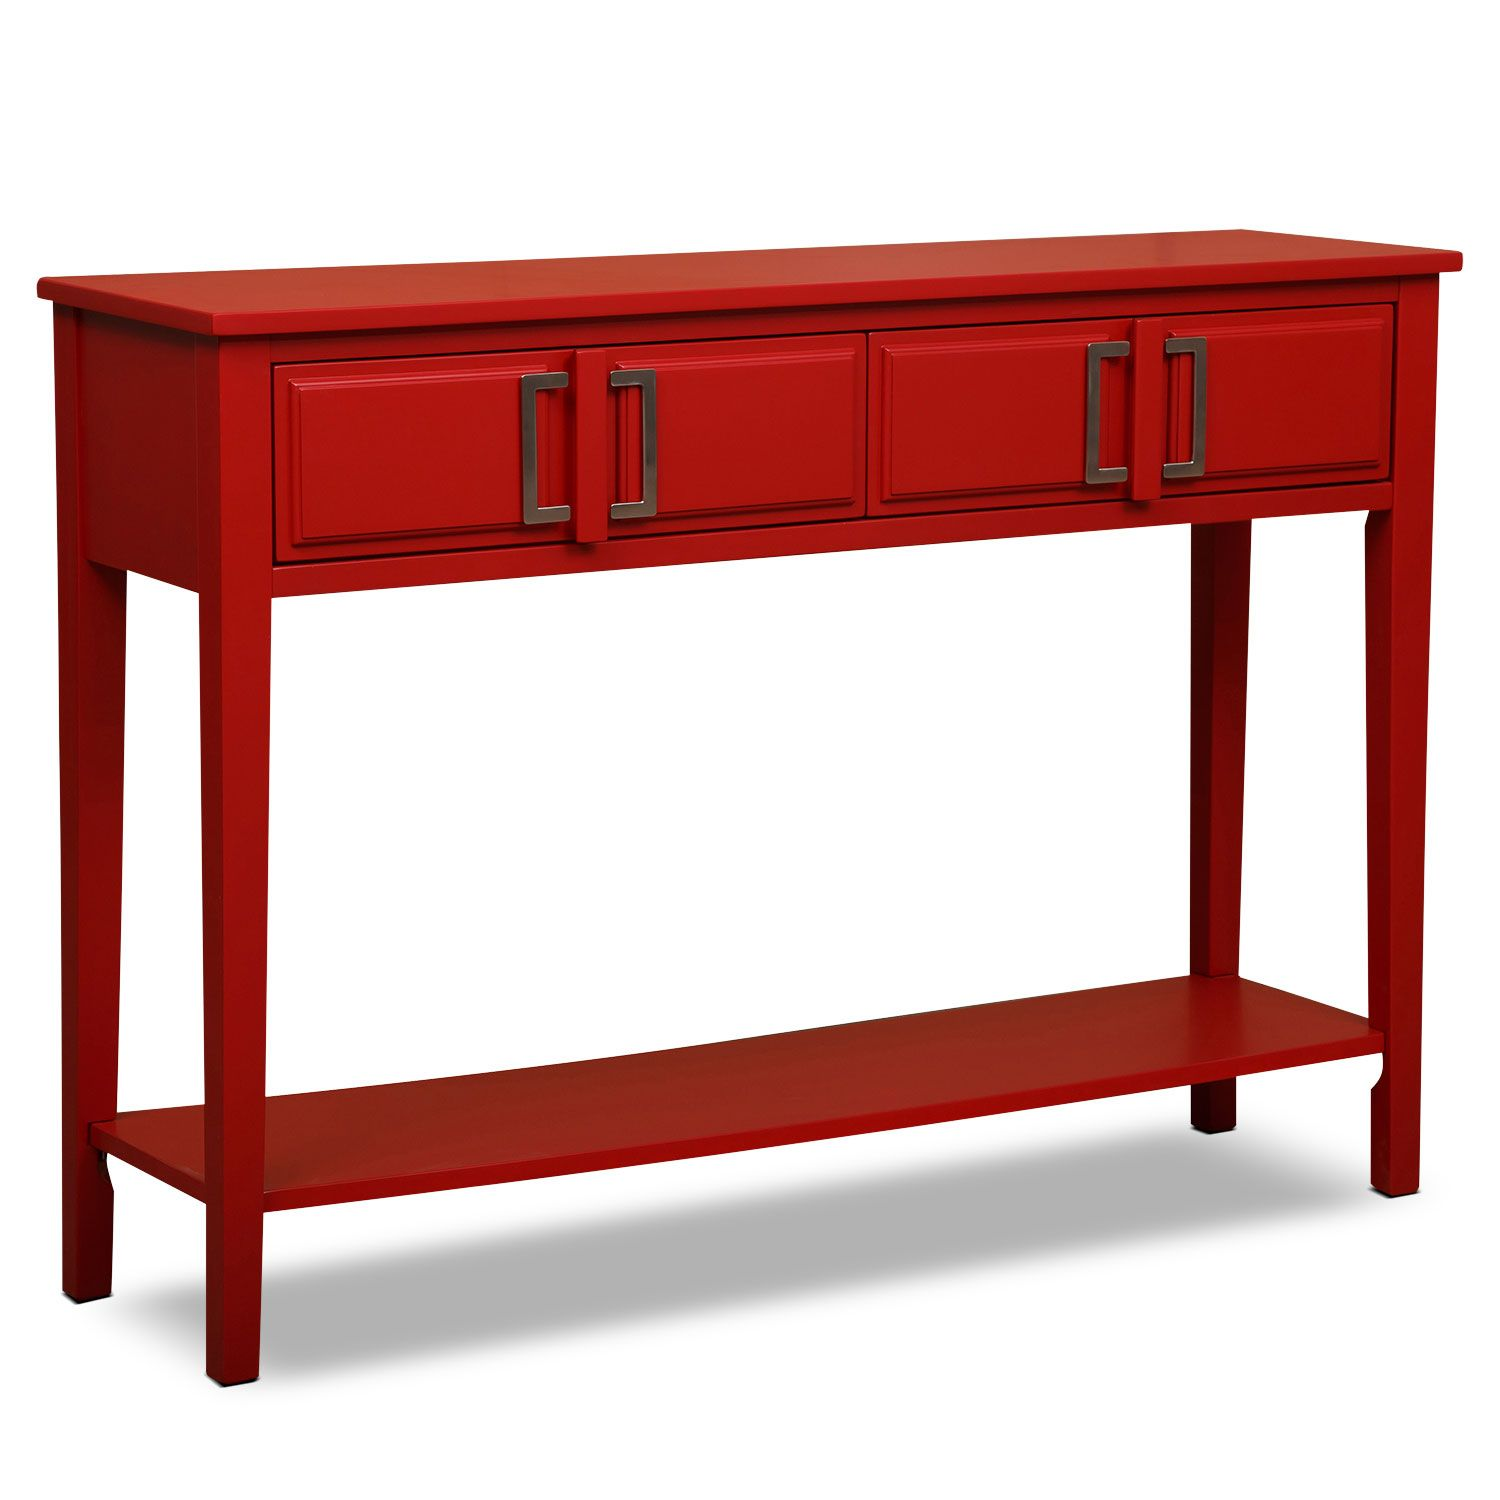 Clean Transition The Watkins Red Console Table Has Clean Lines